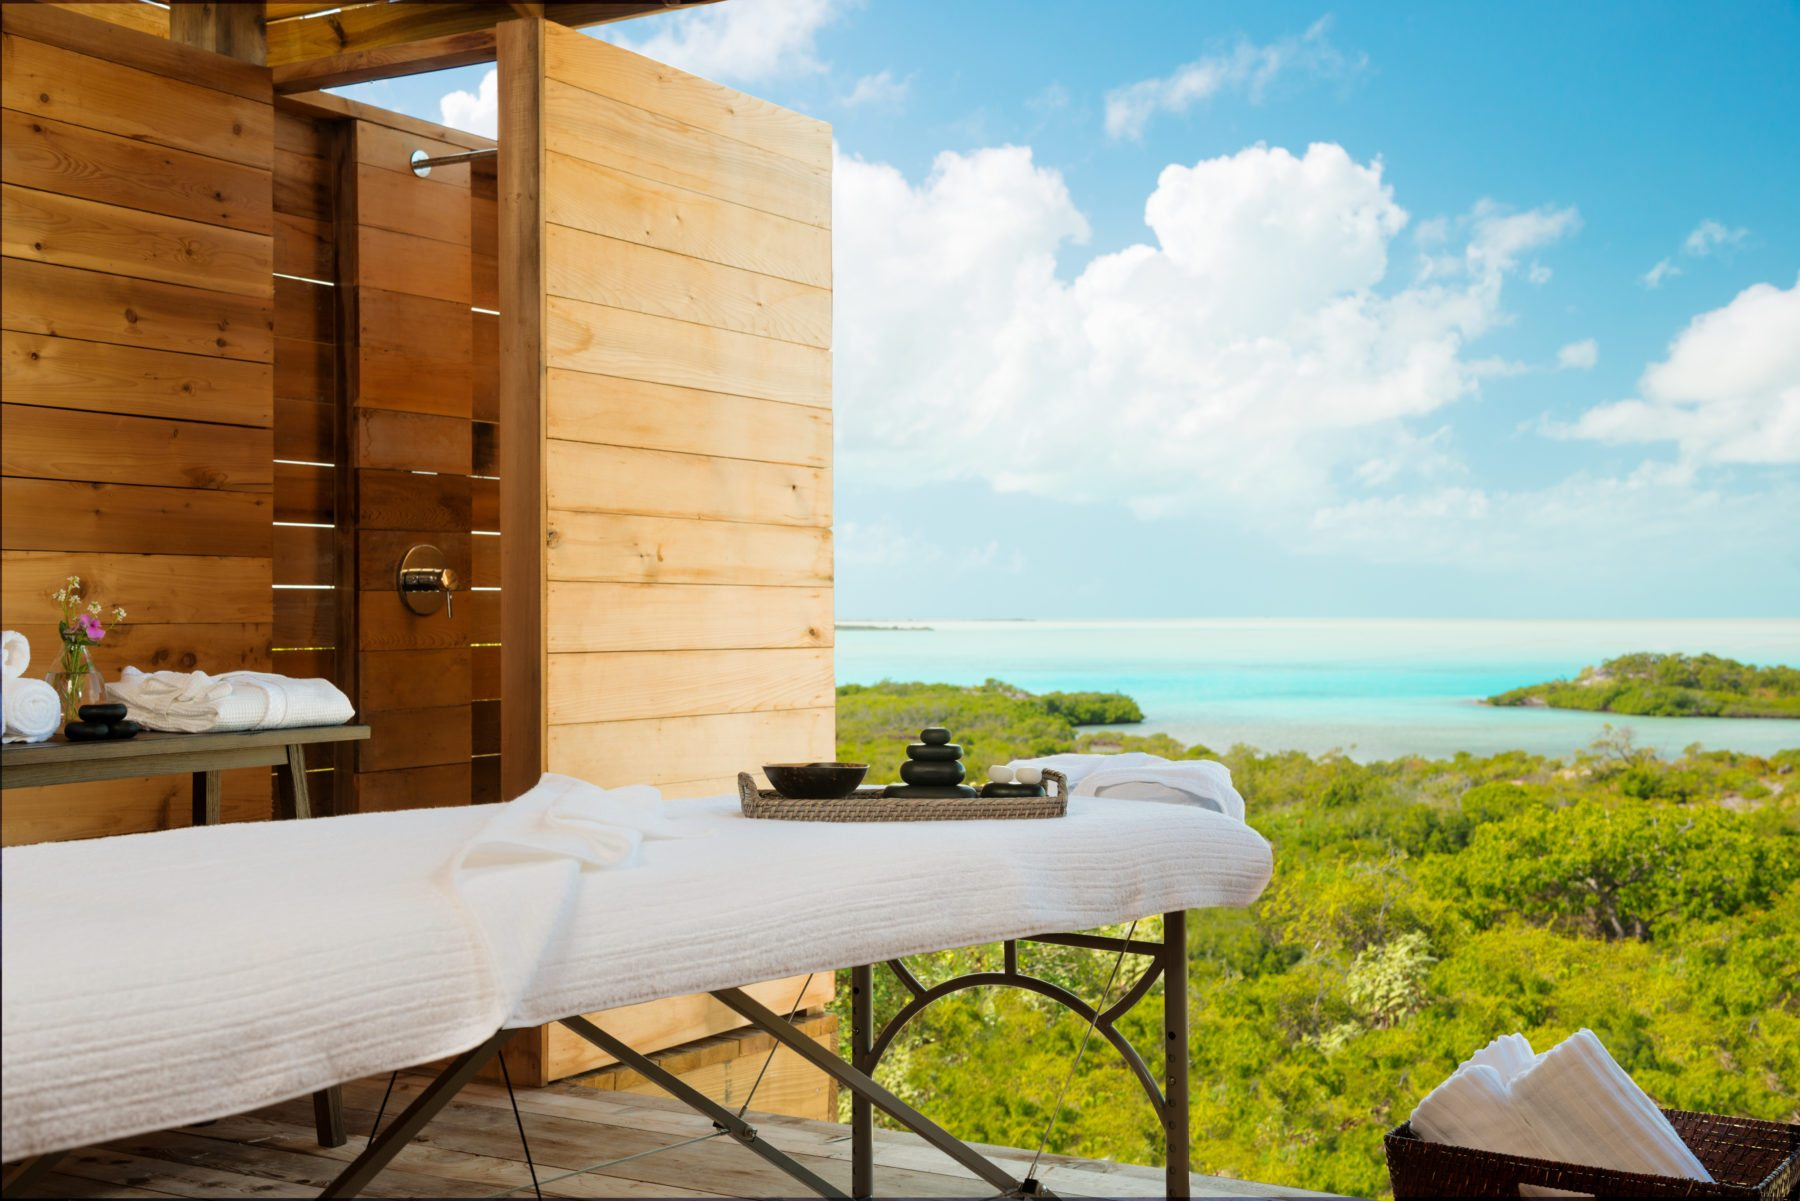 Na Spa - Sailrock Turks and Caicos